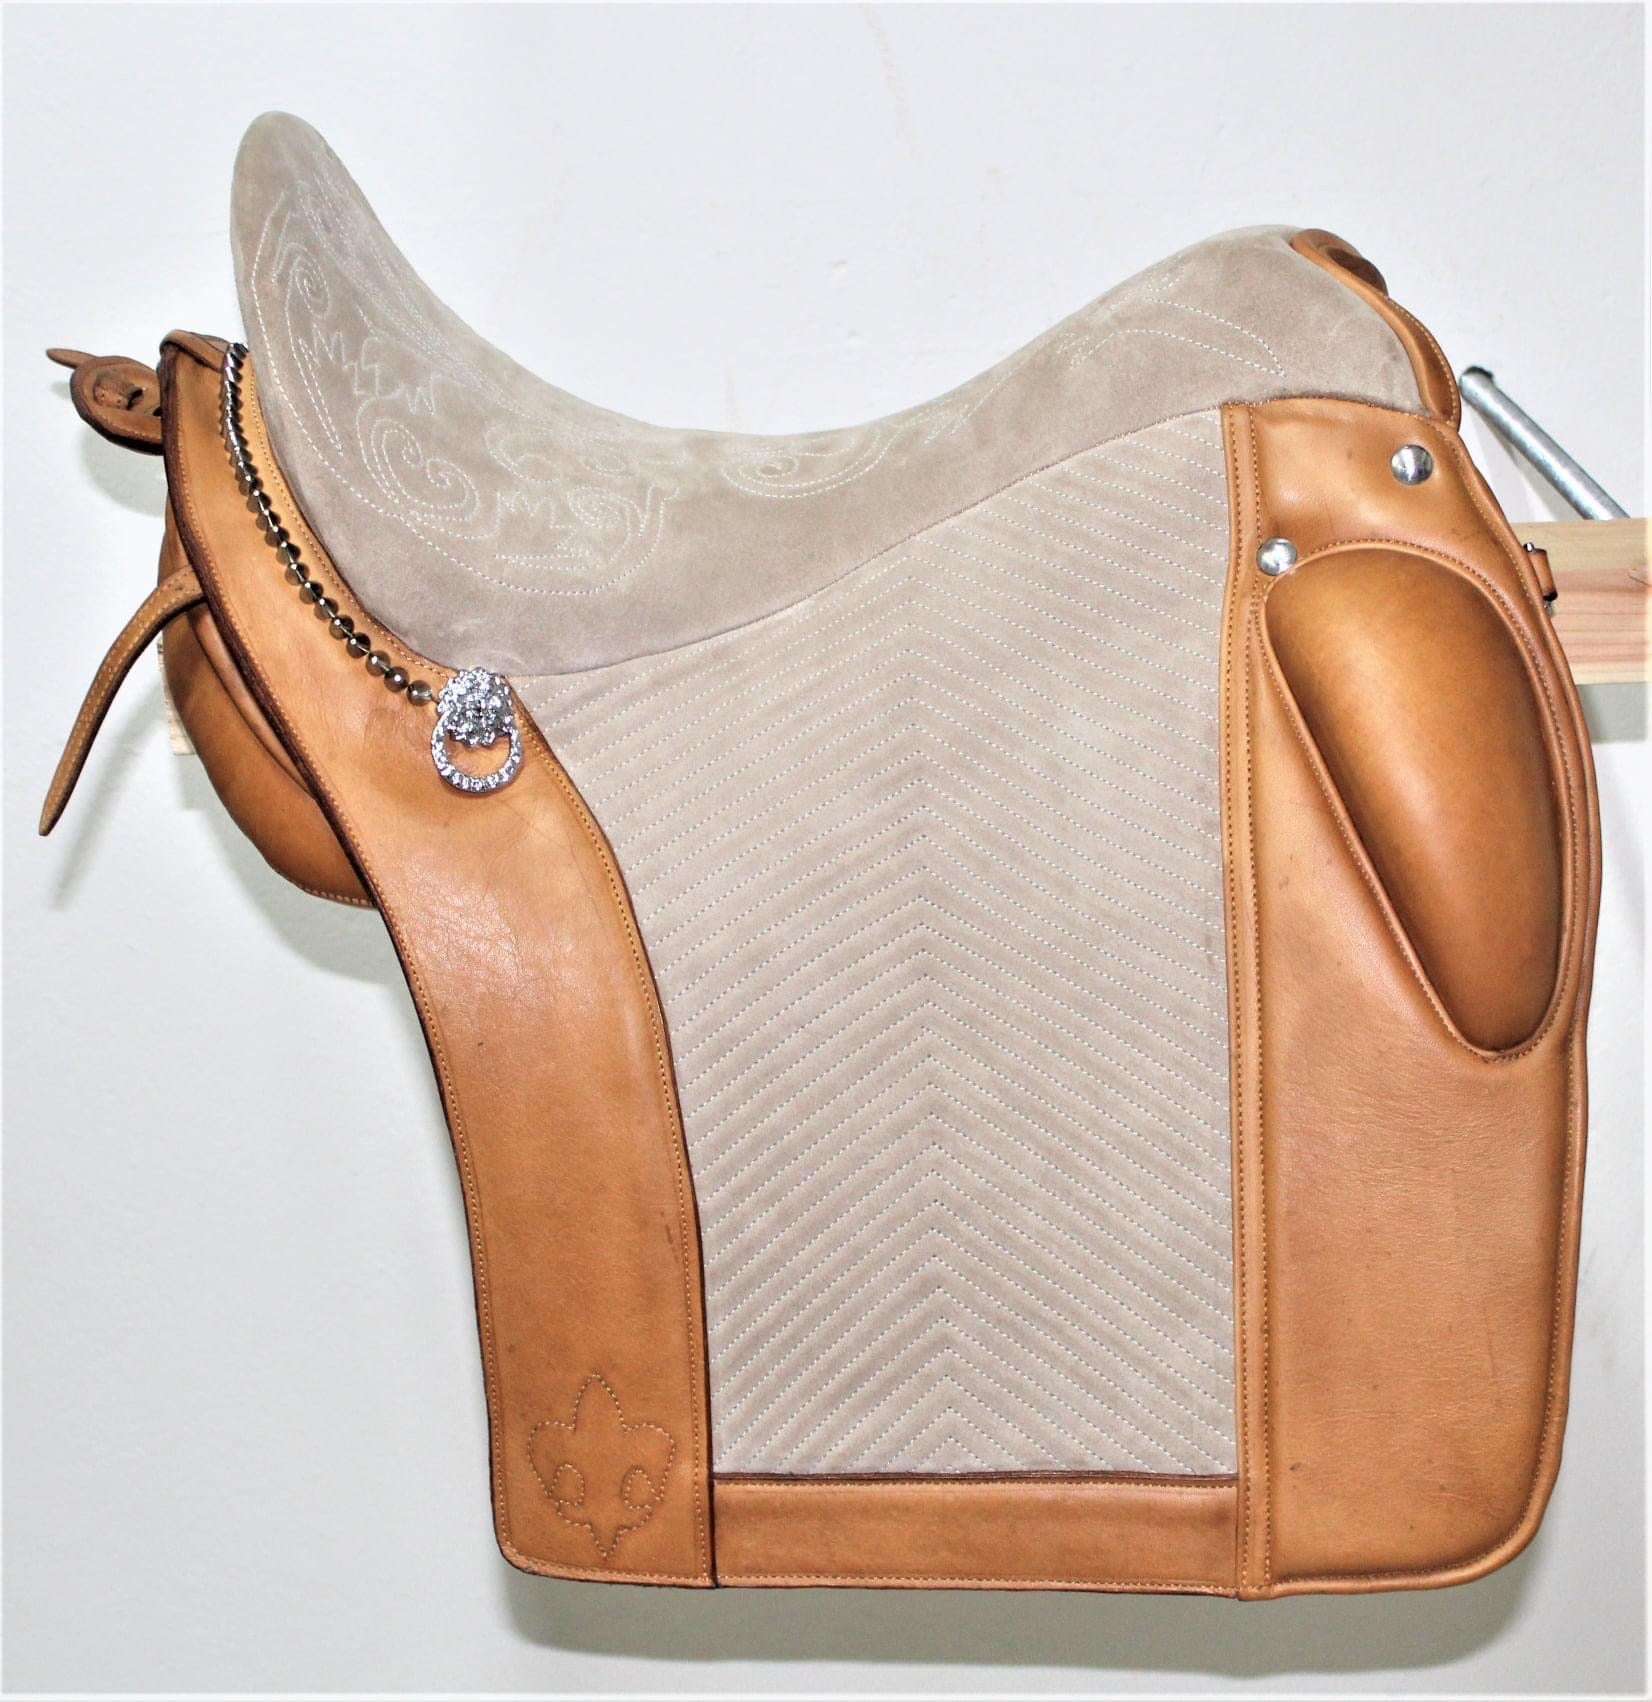 S0108 Custom handcrafted Portuguese saddle for working equitation